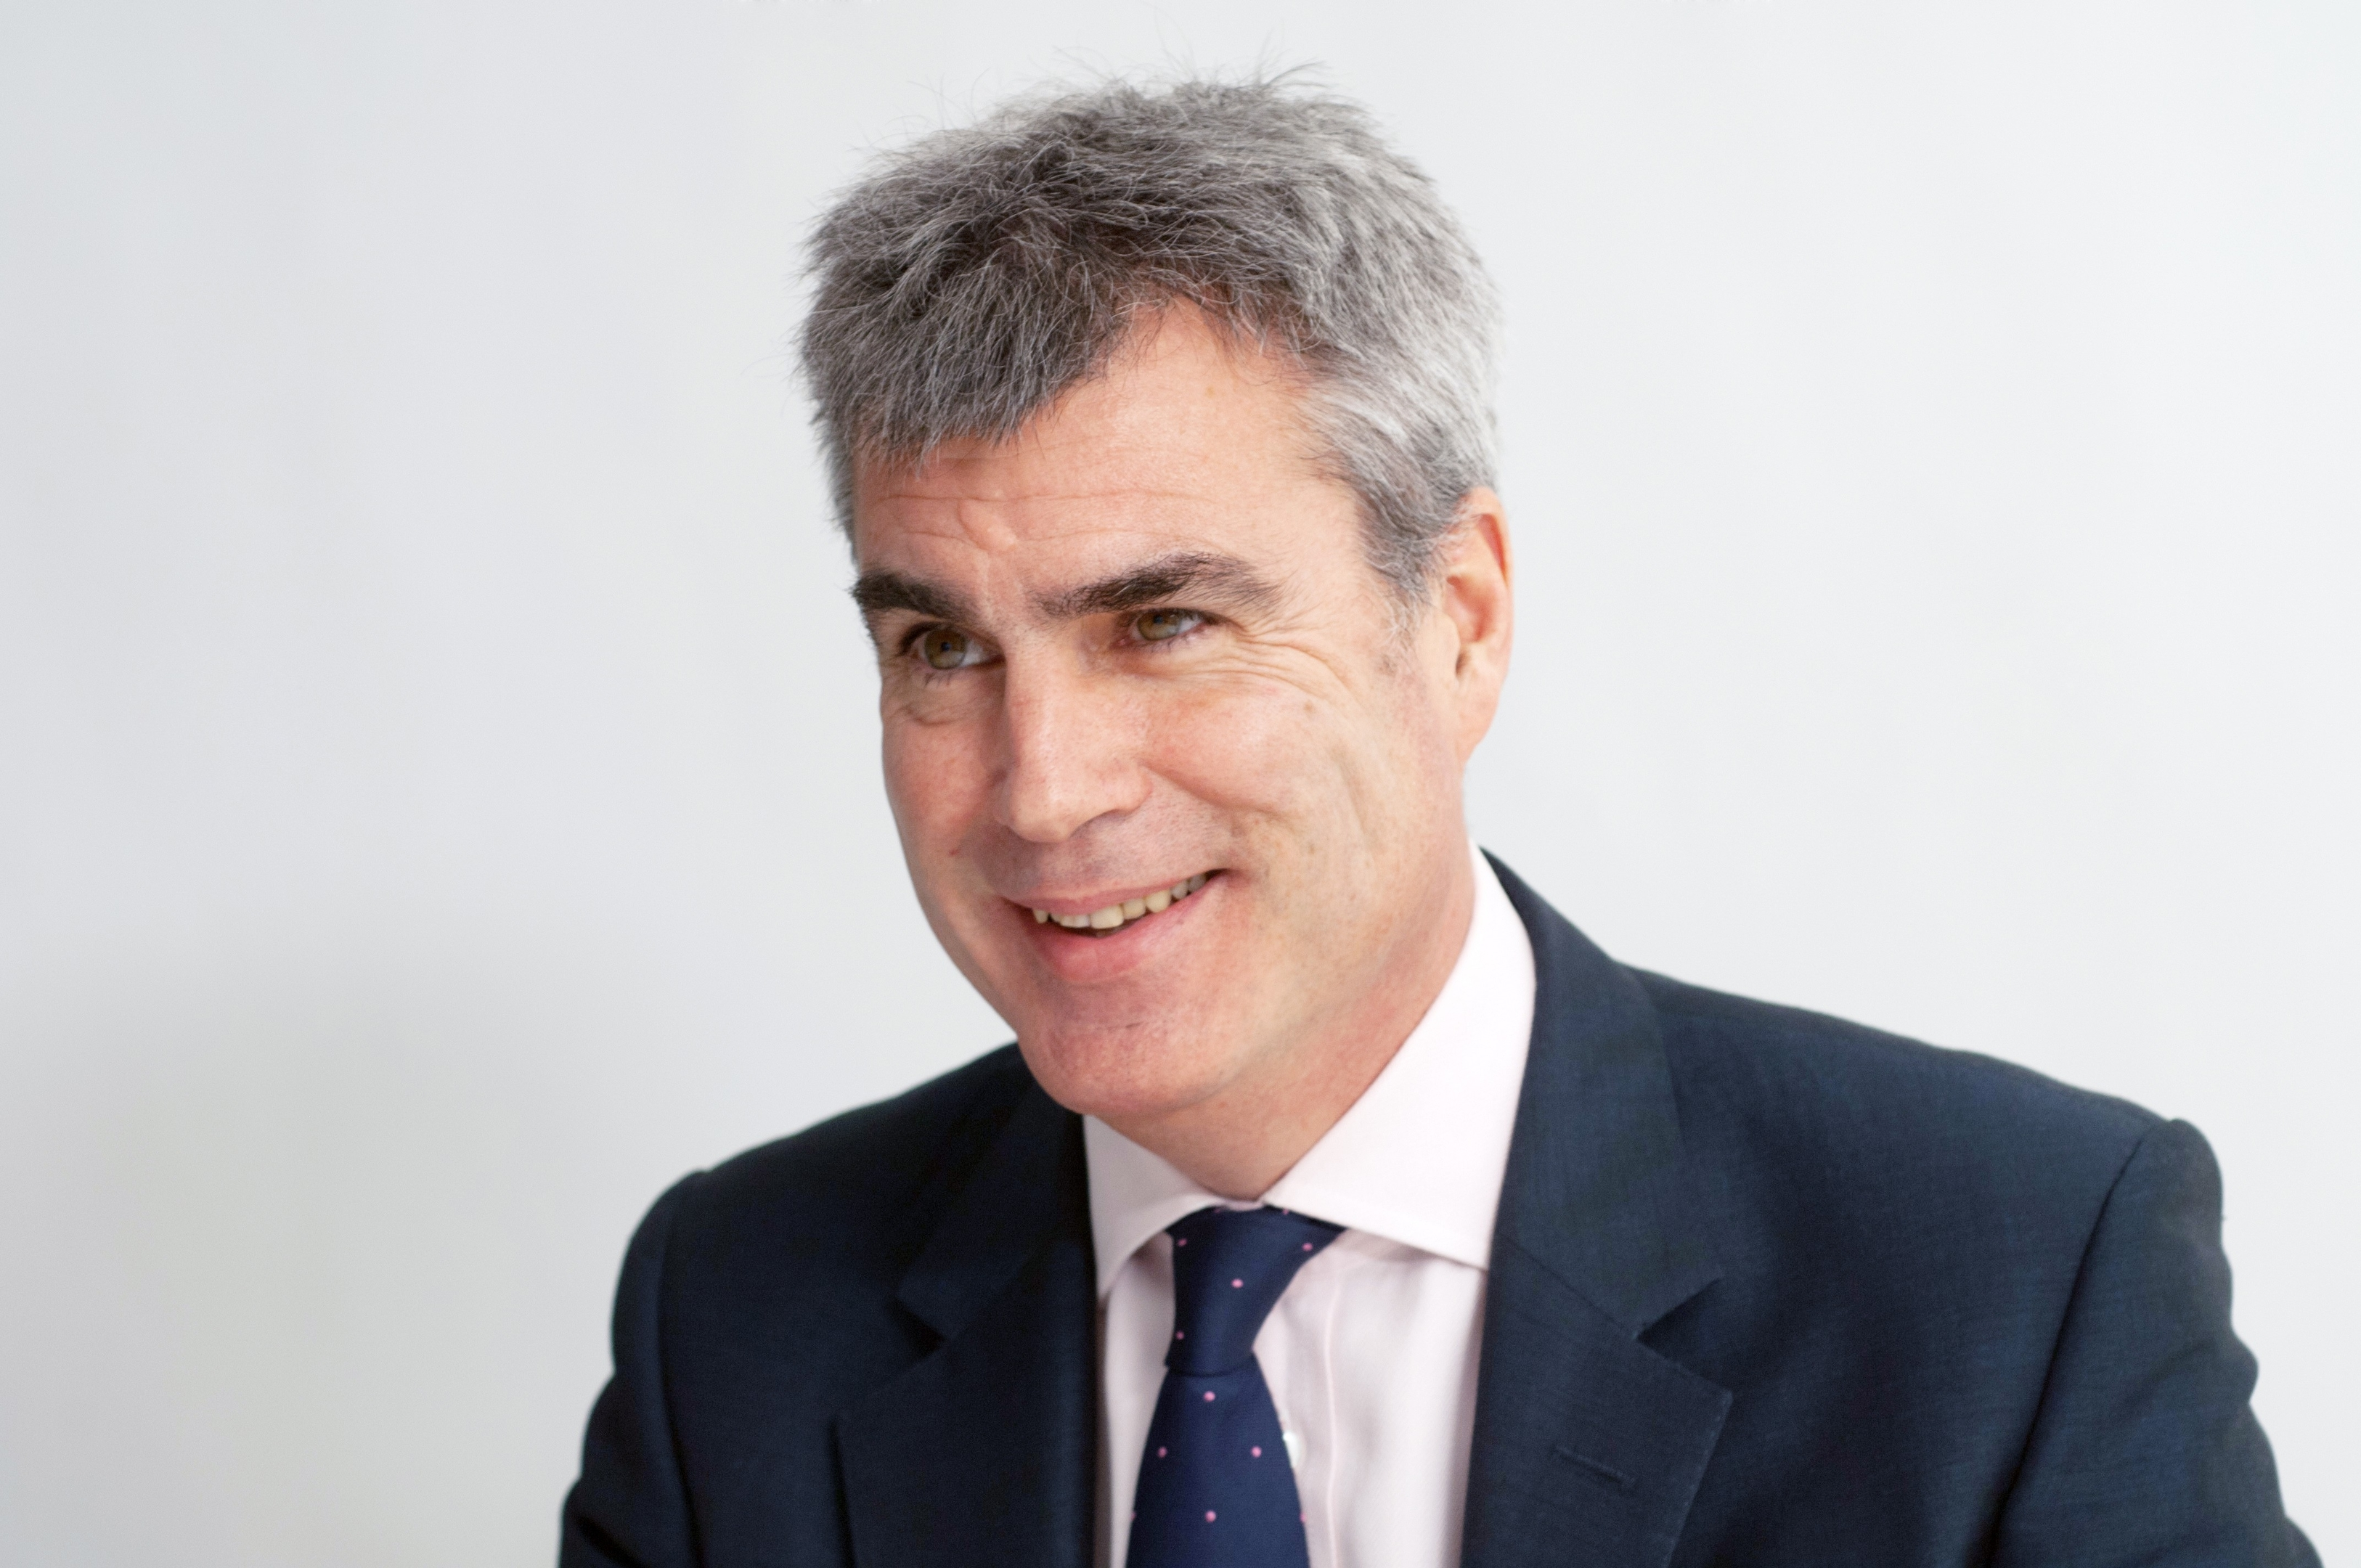 Tim Weller, Petrofac's Chief Financial Officer